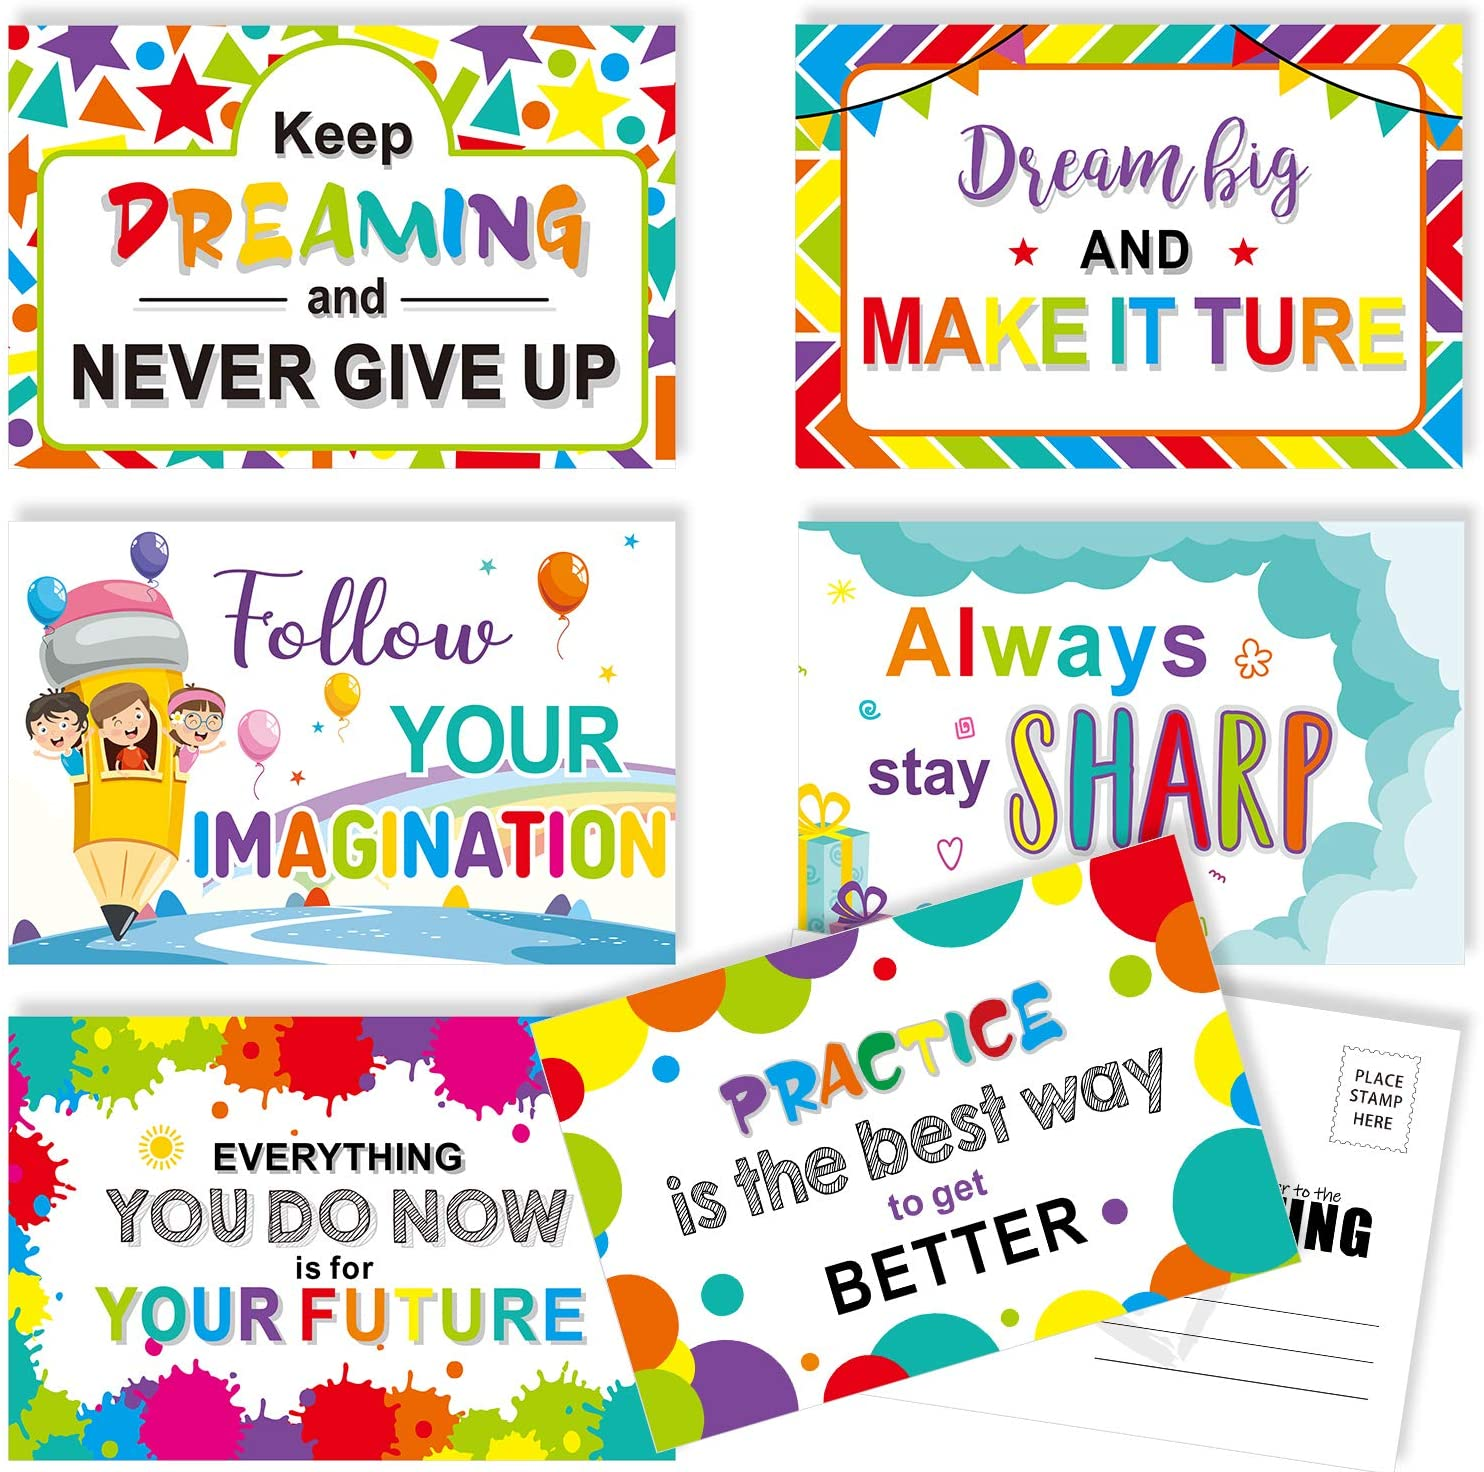 Amazon Com 60 Pieces Motivational Teacher Postcards Thinking Of You Encouragement Inspirational Quote Cards For Students Back To School Note Card 6 Designs Office Products